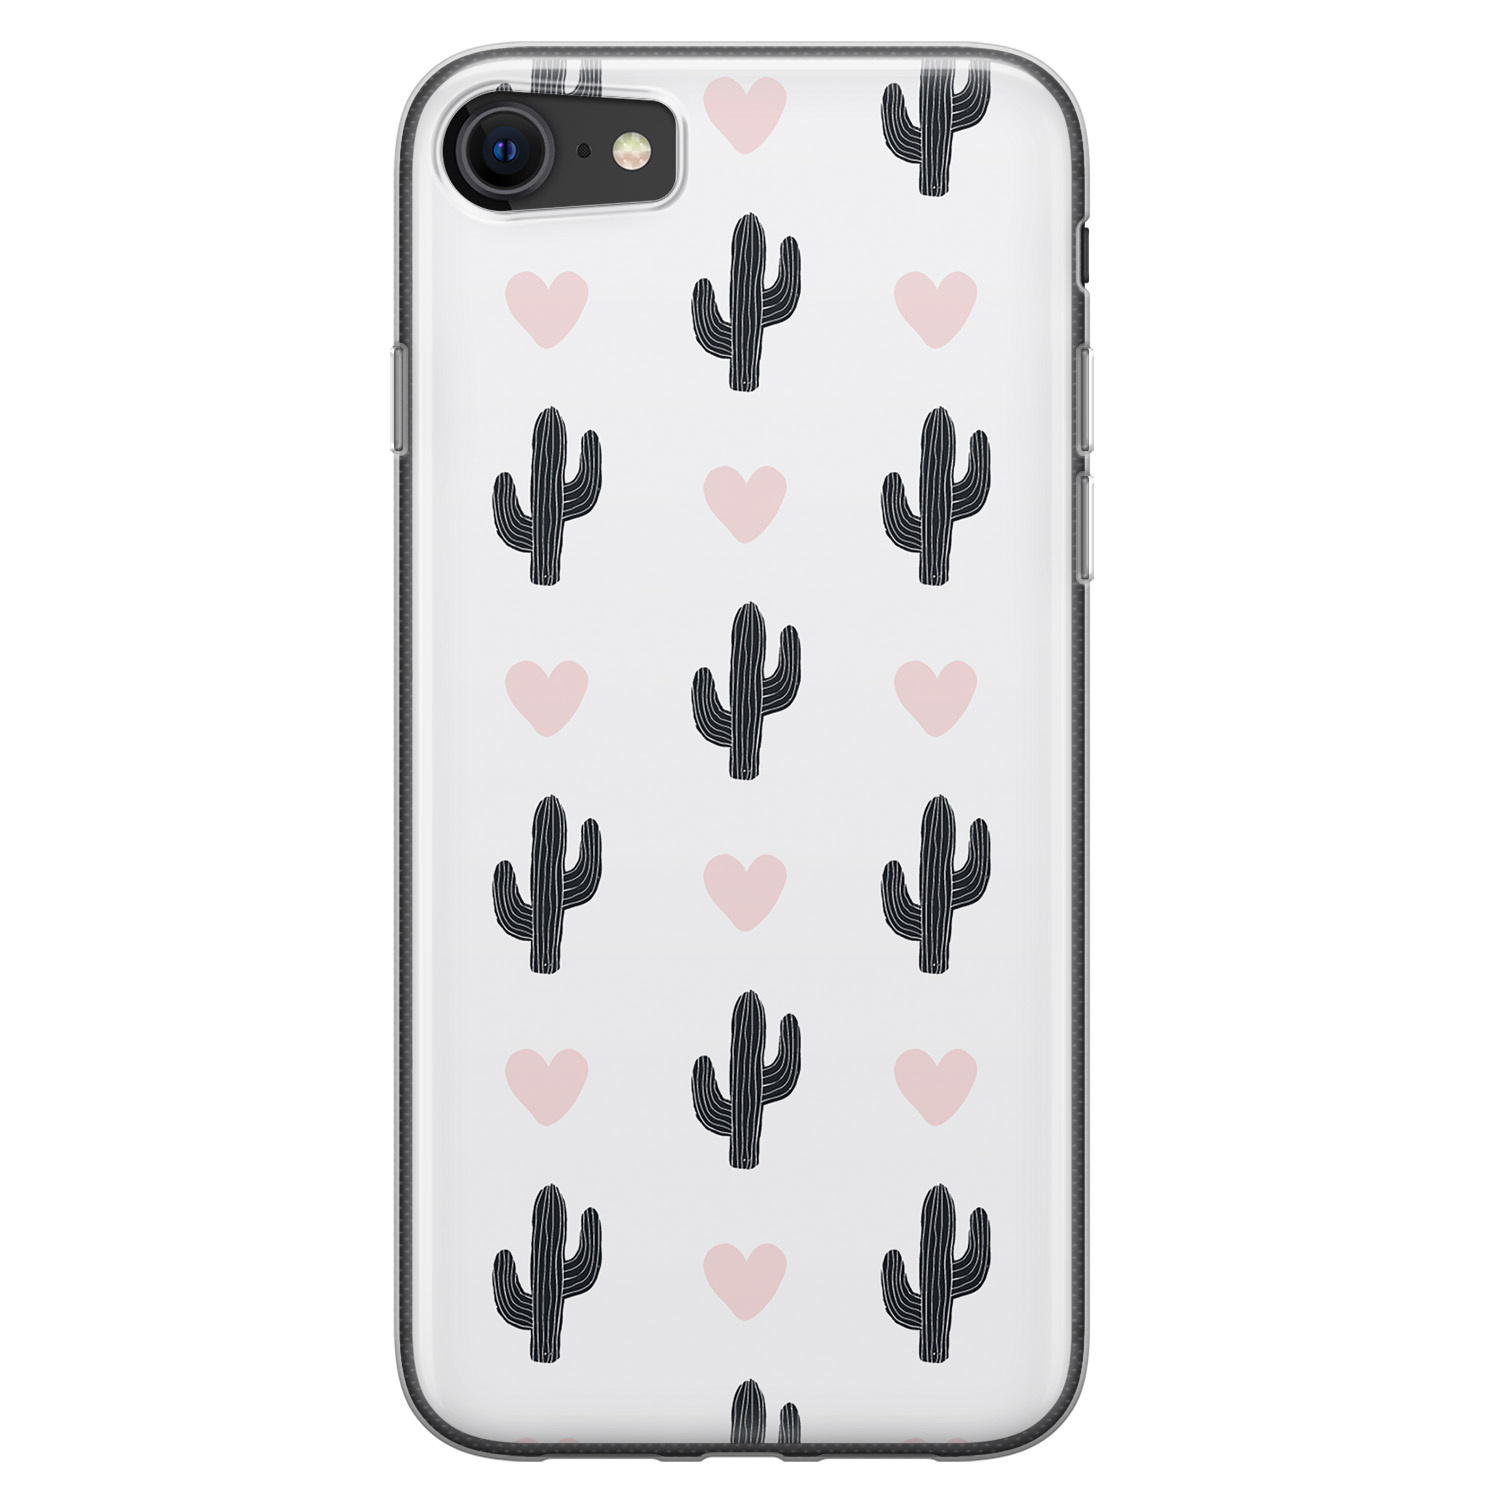 iPhone SE 2020 siliconen hoesje - Cactus love